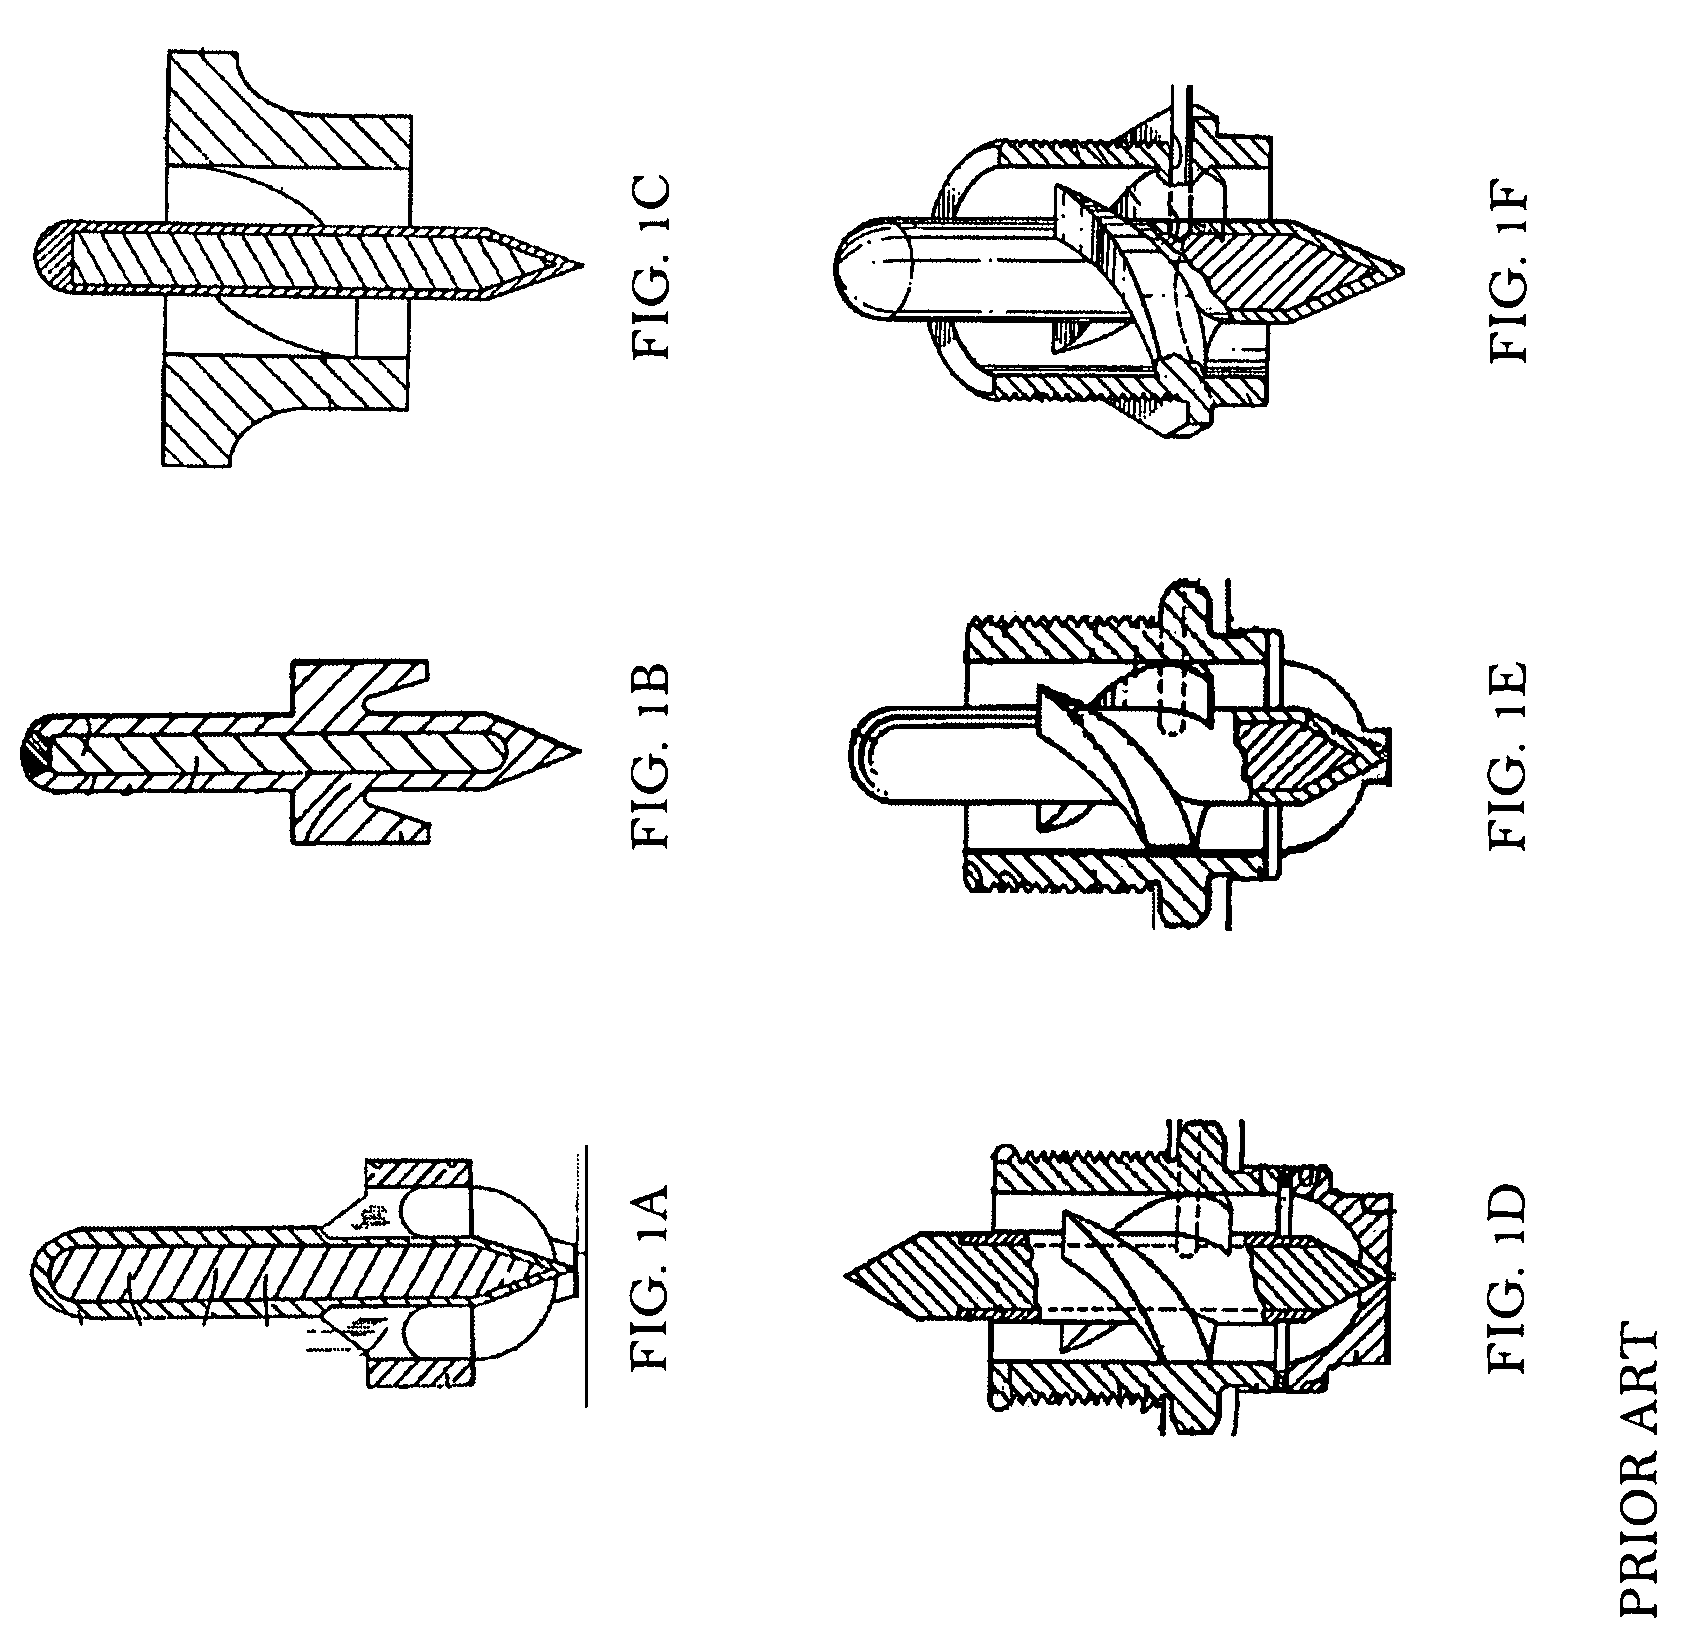 Patent US7604476 - Hot runner nozzle system - Google Patents